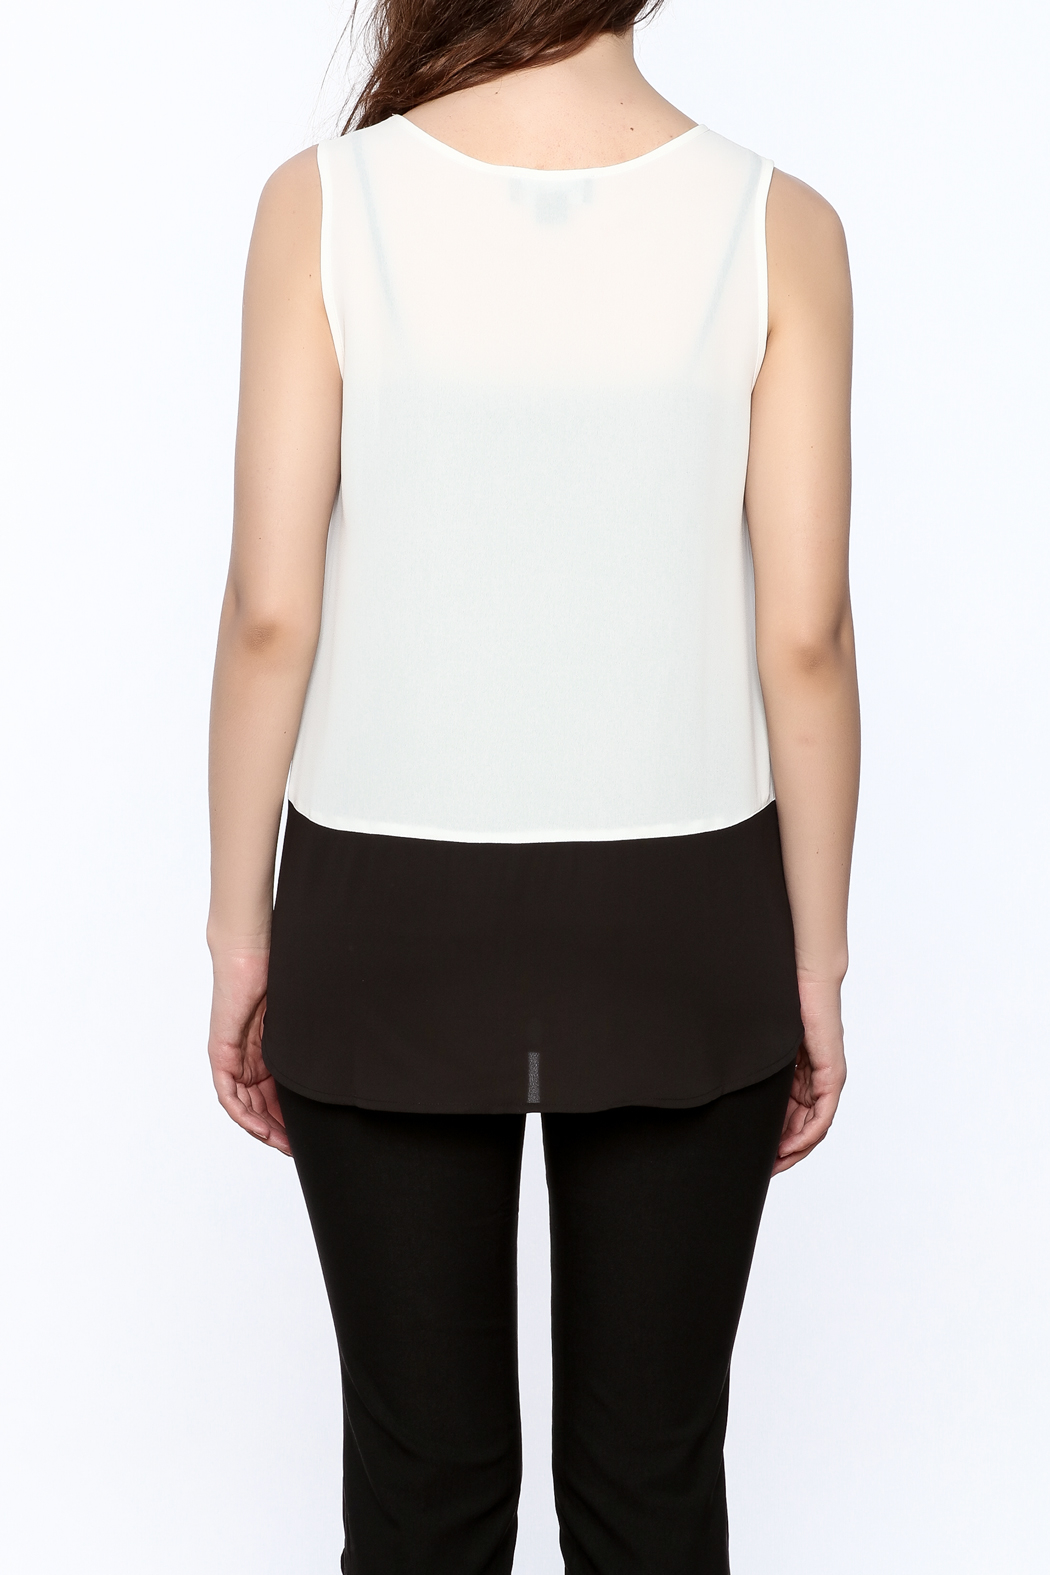 Charlie Paige Loose Fit Chiffon Top - Back Cropped Image